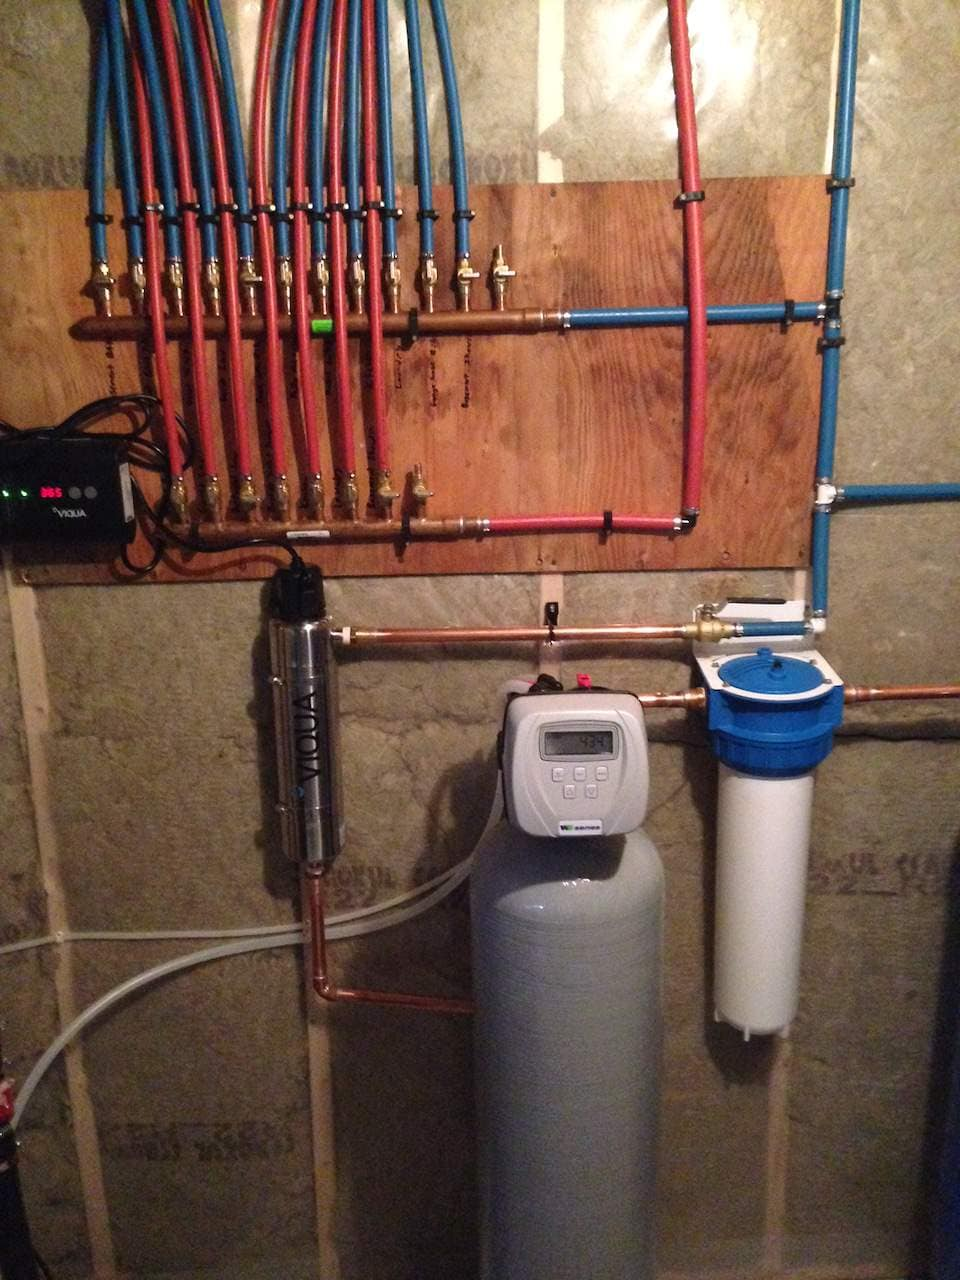 Organized plumbing in the basement